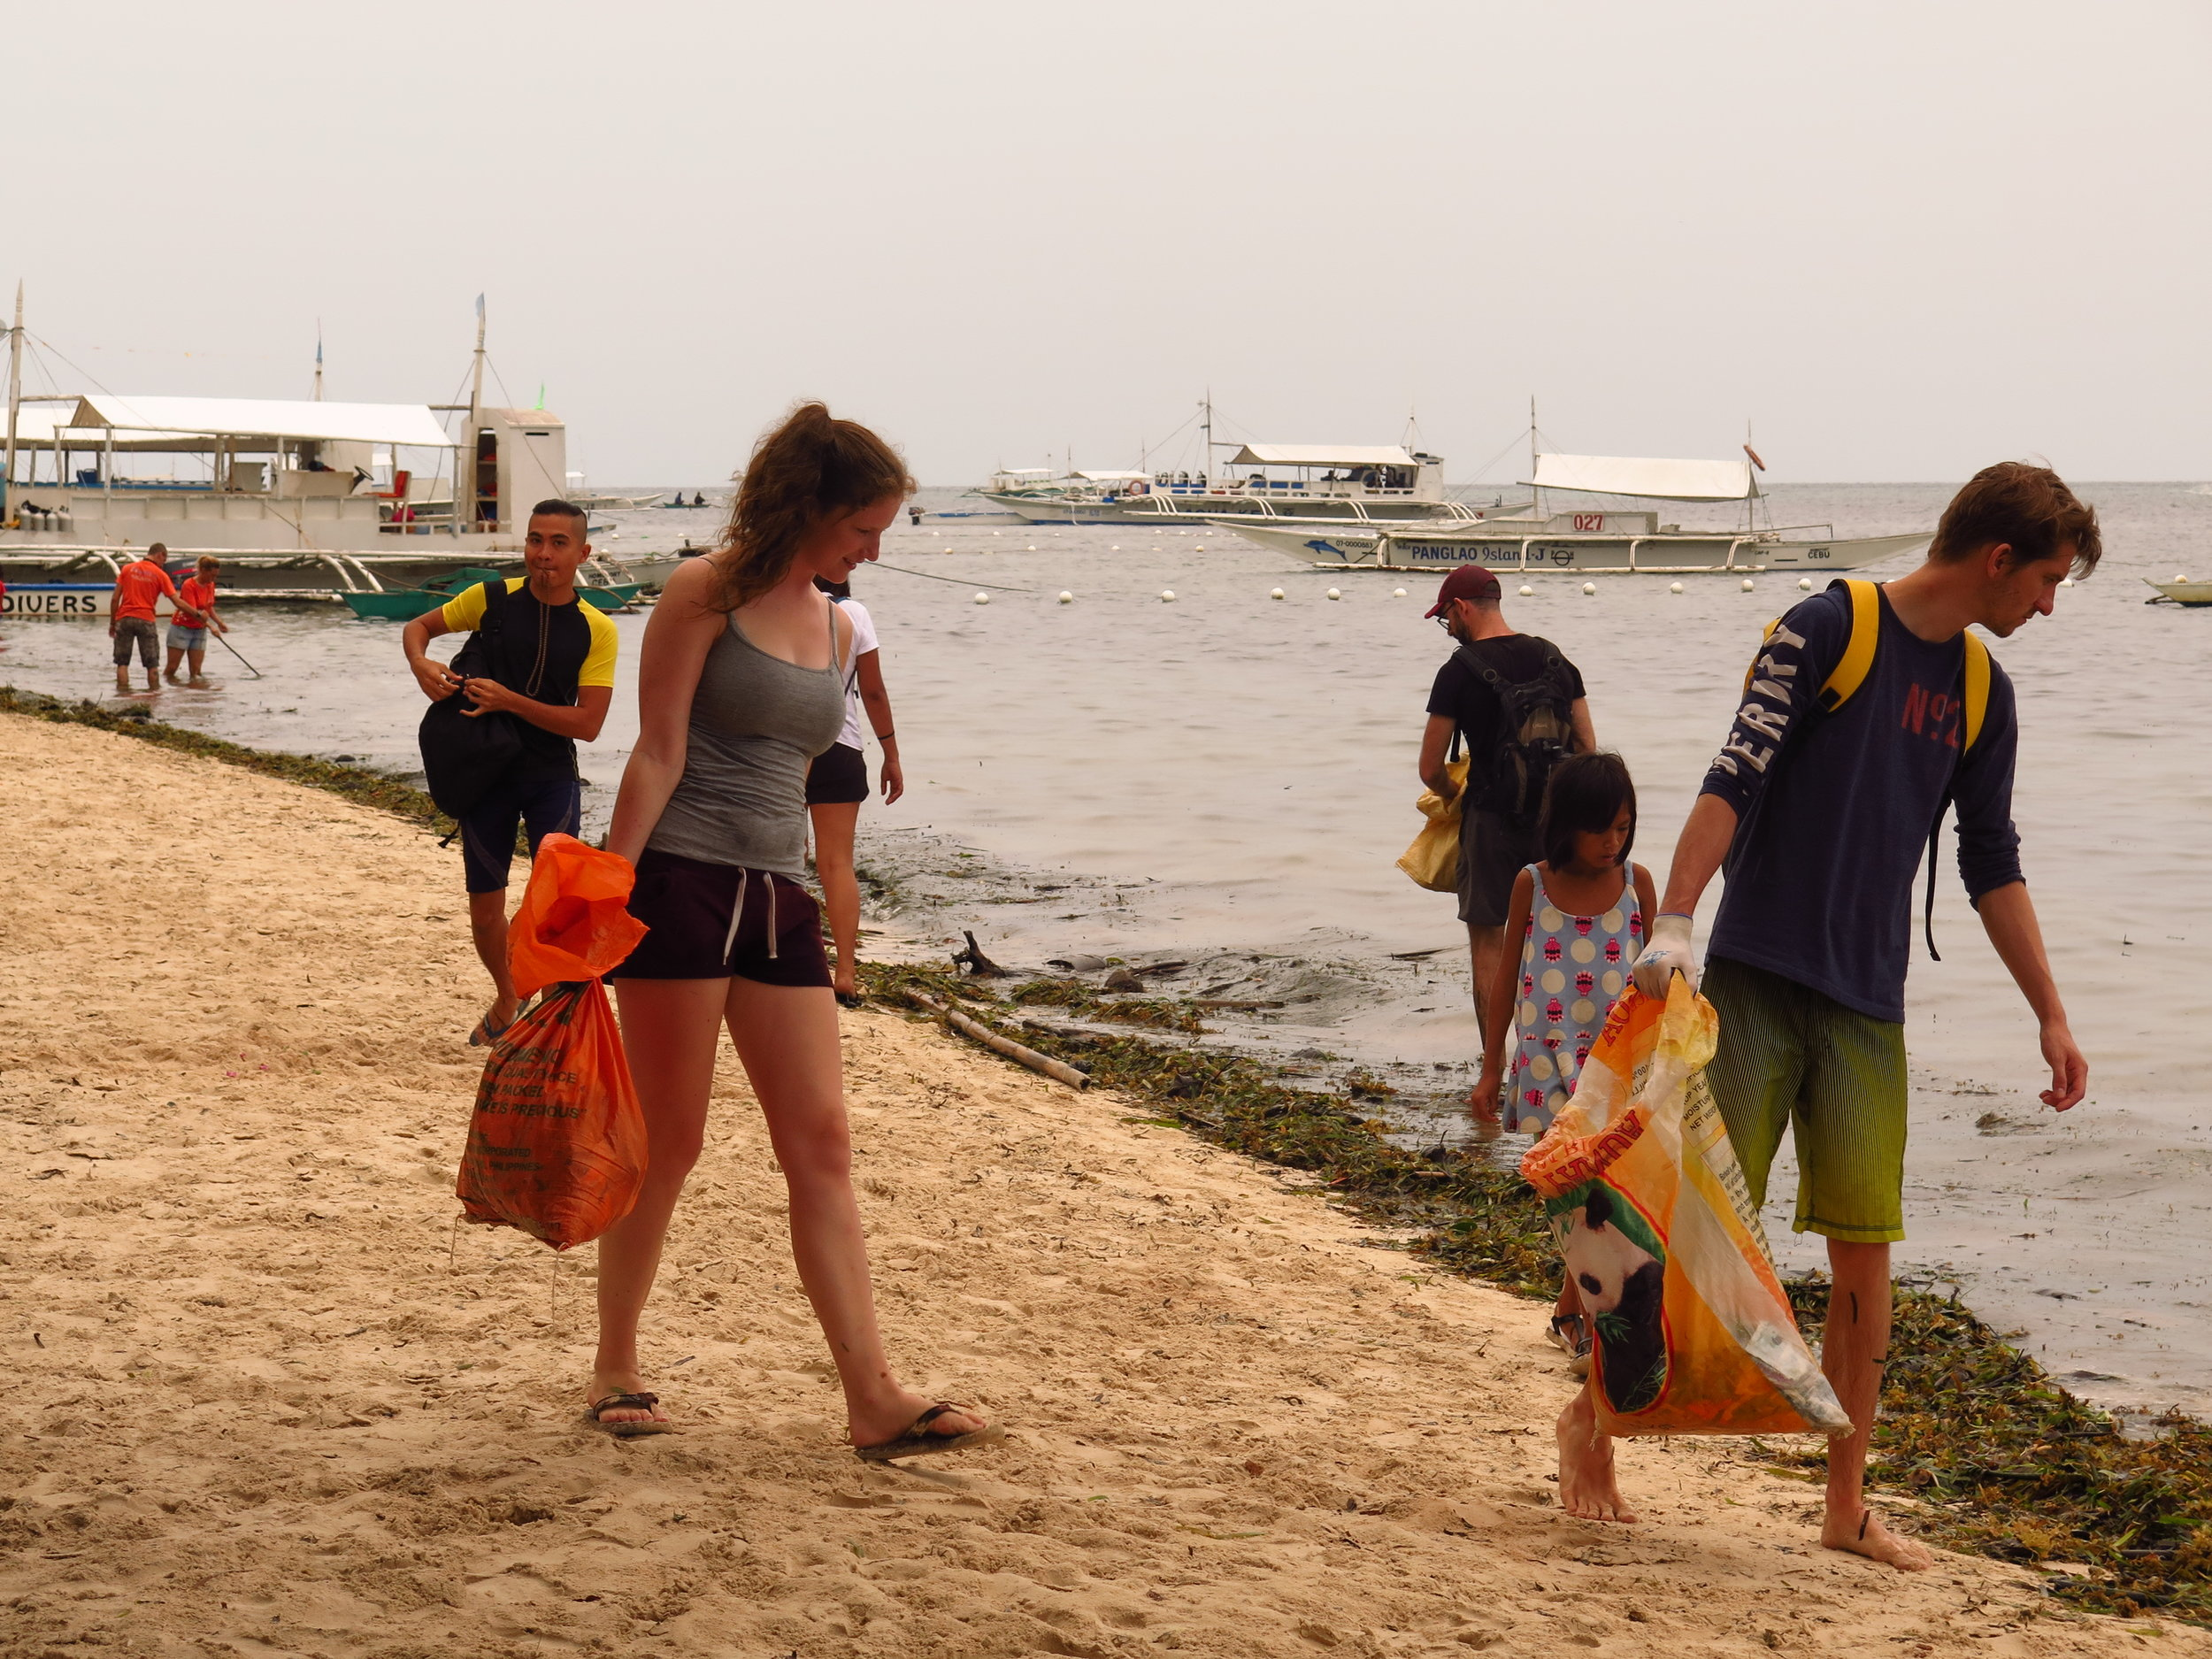 My first beach clean-up in the Philippines in 2017, part of the spark that lit my environmentalism fire.